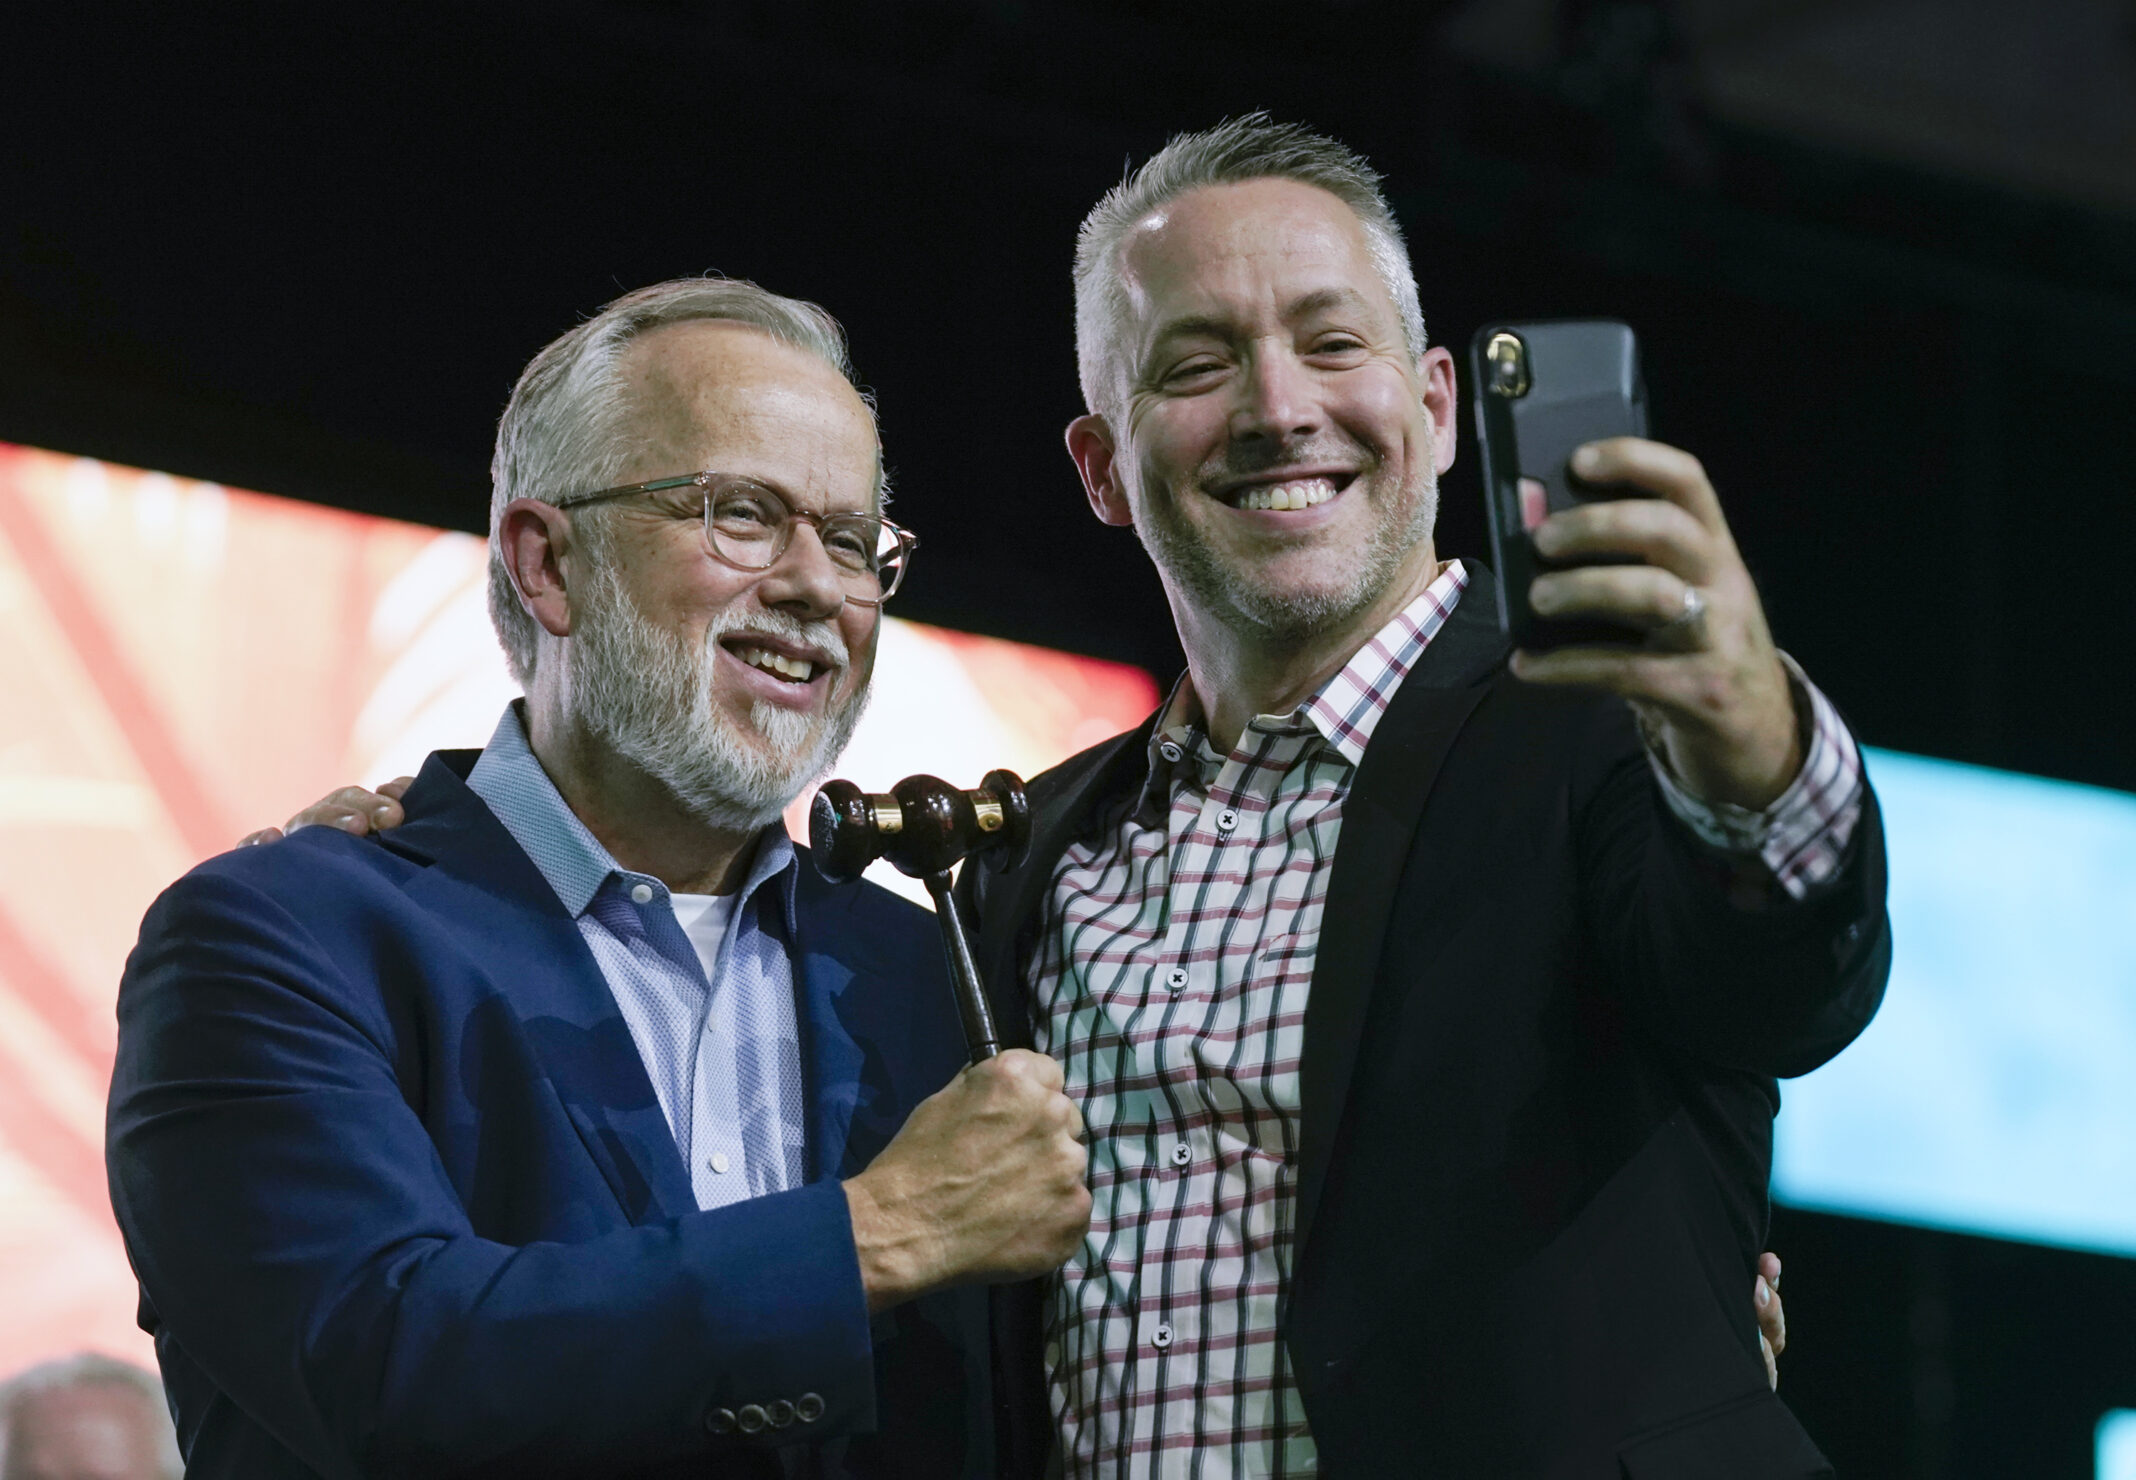 The Sermon That Both J.D. Greear, the Former Southern Baptist Convention President, and Ed Litton, the New Southern Baptist Convention President Preached Was Worse Than the Plagiarism, and the Plagiarism Was the Worst That We Have Ever Seen.